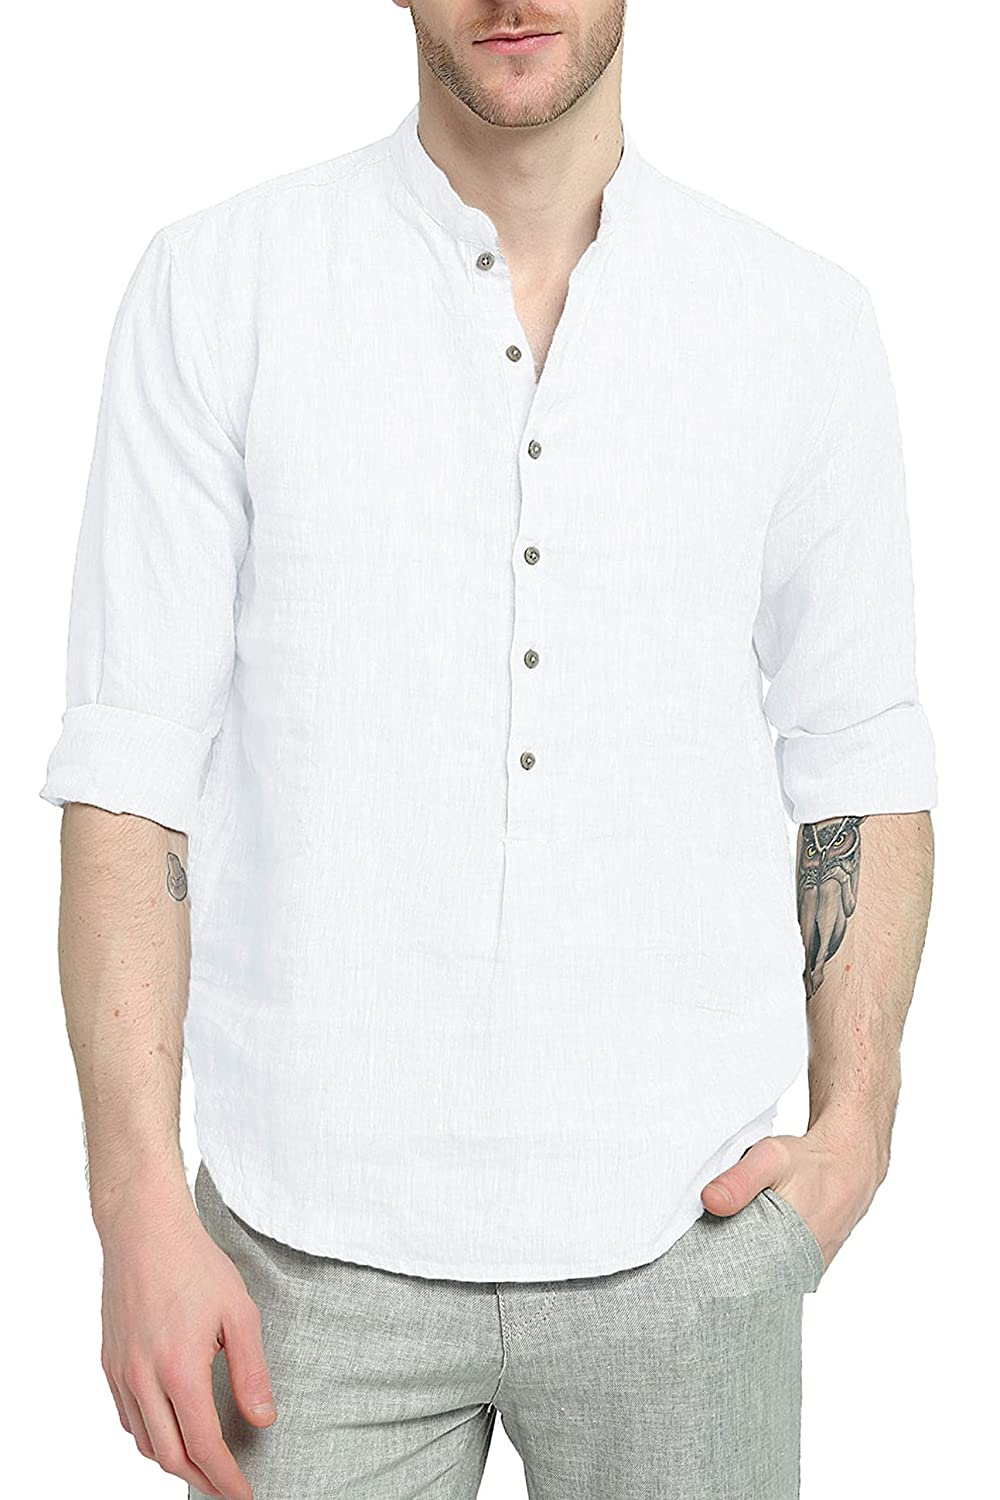 f7ef7370d0a32 Najia Symbol Men s 100% Linen Mandarin Collar Long Sleeve Popover Shirt  (White